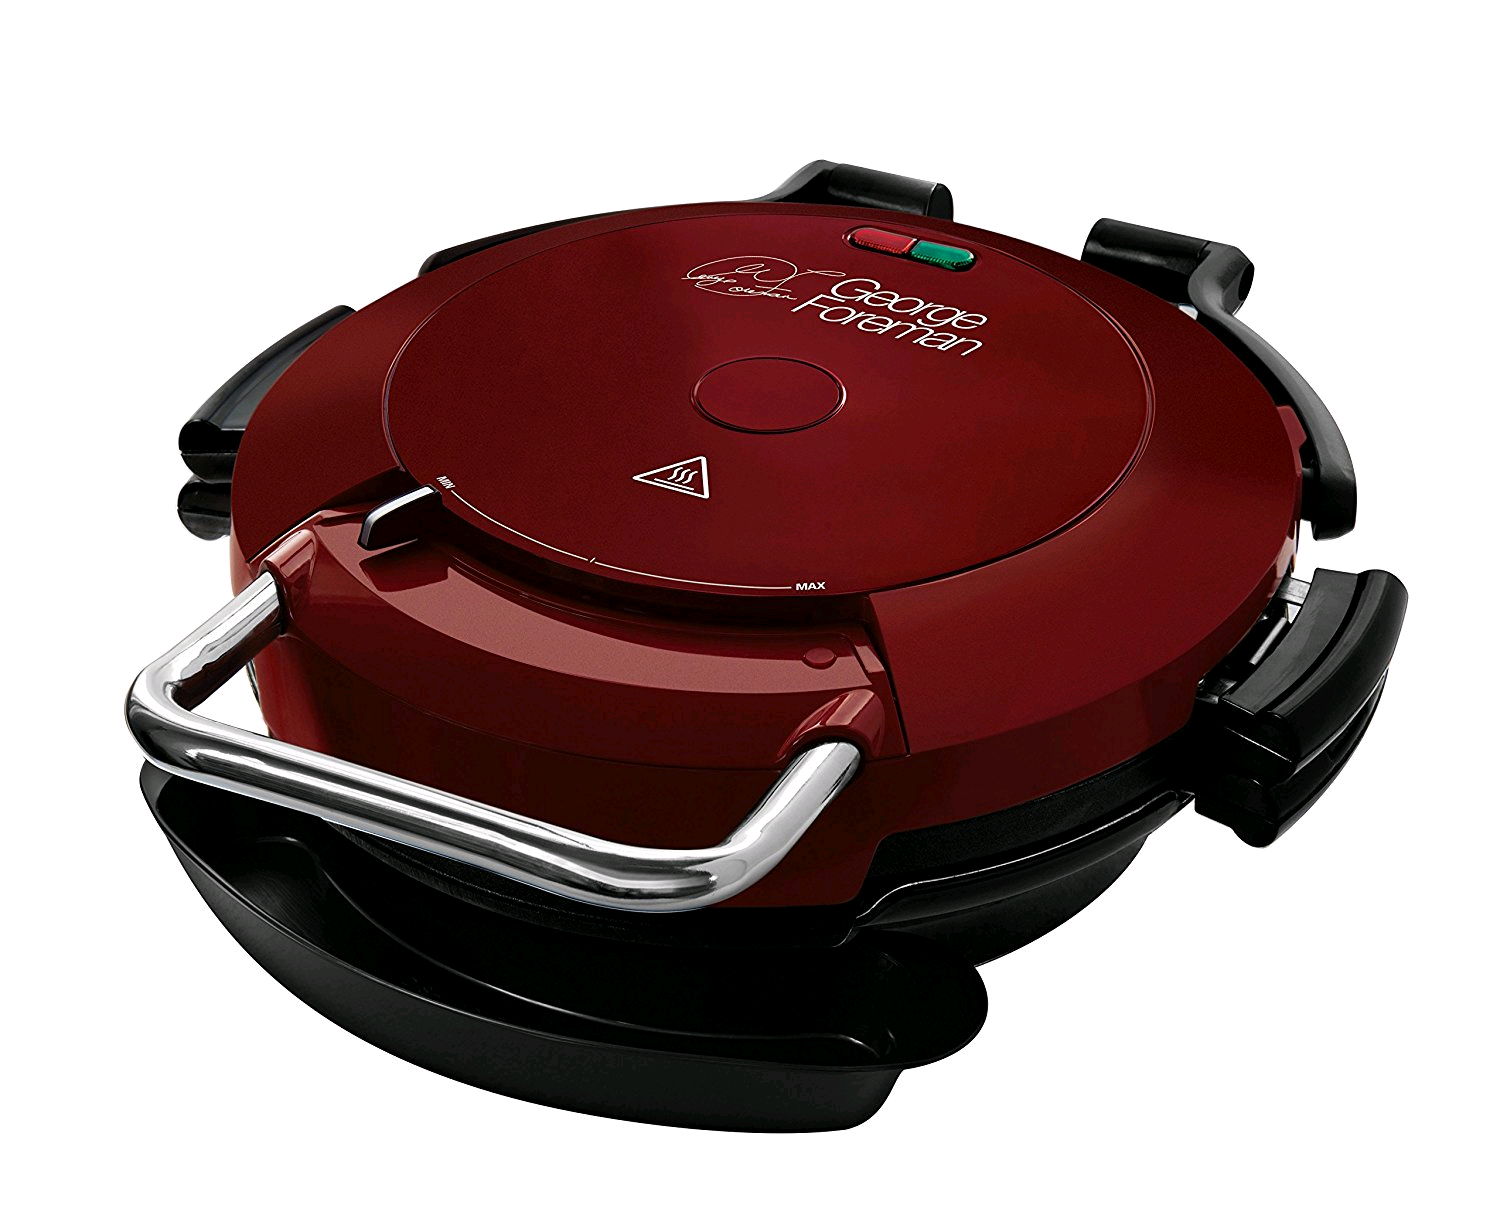 George Foreman 24640 7-Portion Entertaining 360 Grill, 1750 W, Red